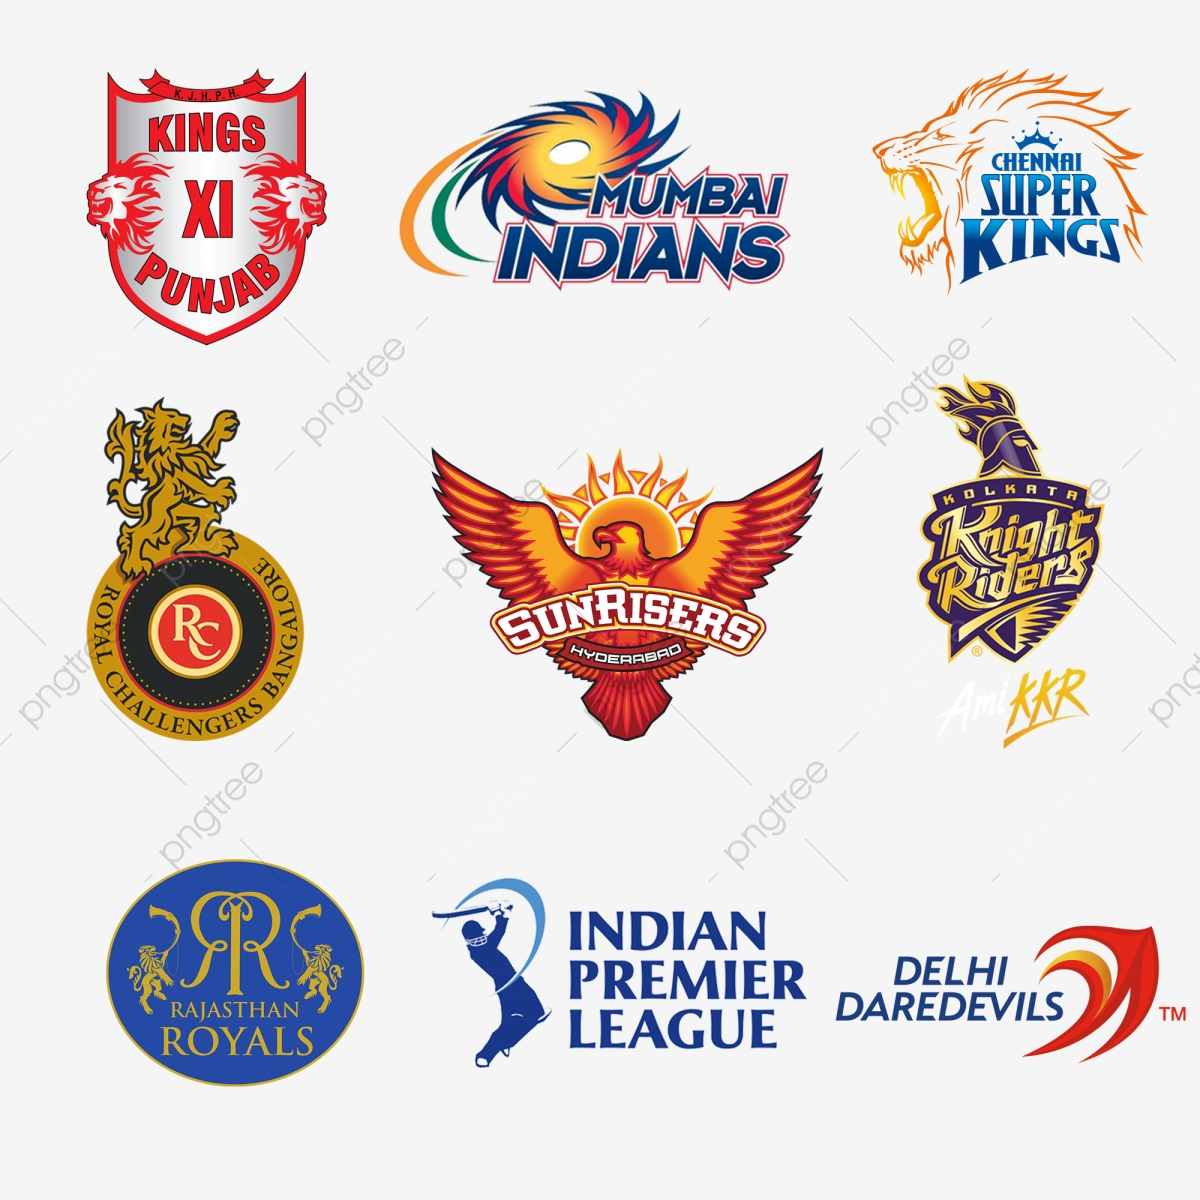 IPL Indian Premier League Logo PNG, Ipl, Indian Premier League